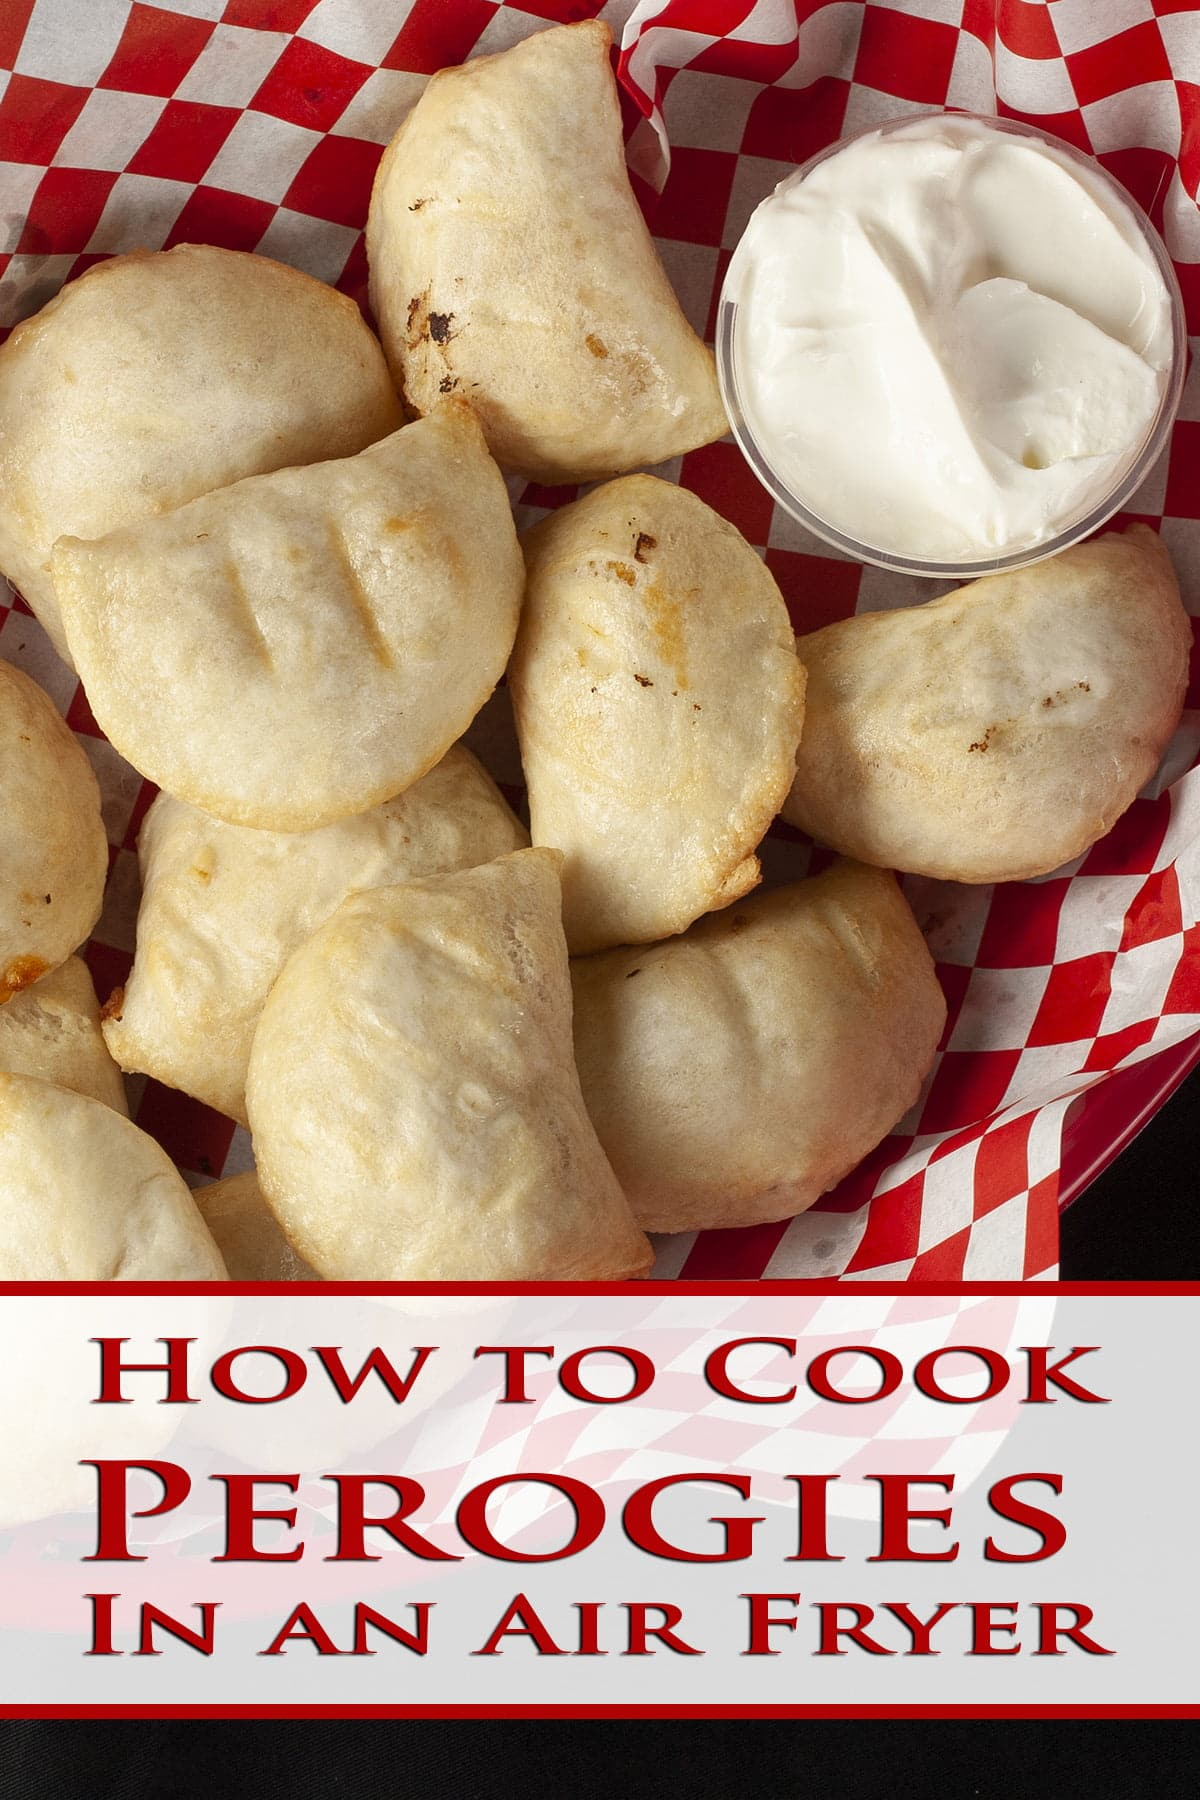 Perfectly air fried perogies are mounded in a red basket, accompanied by a small bowl of sour cream.